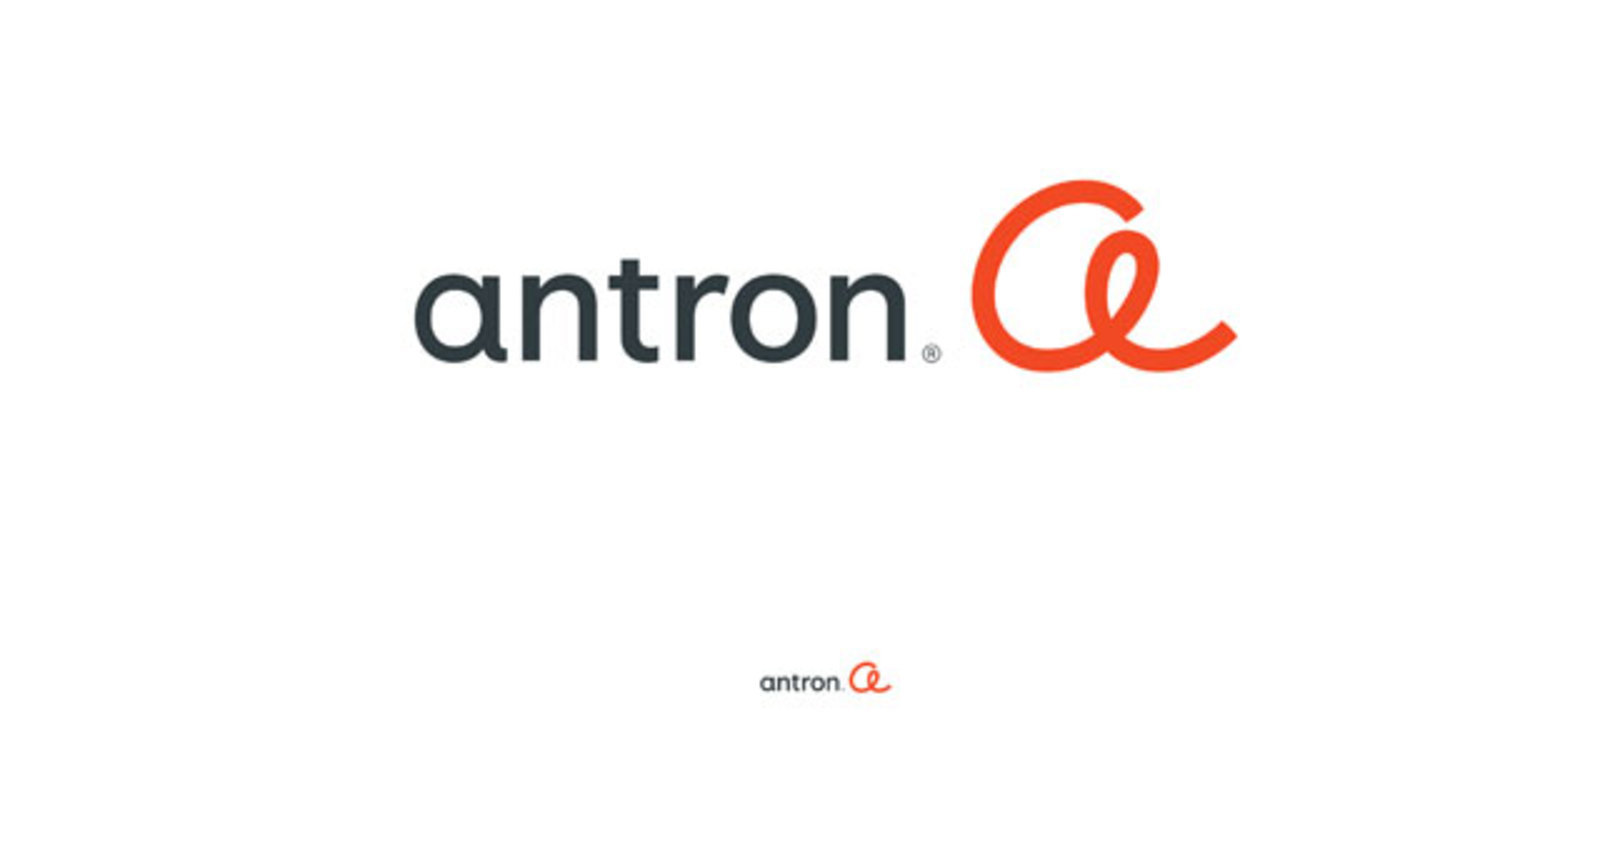 Antron Corporate Identity System